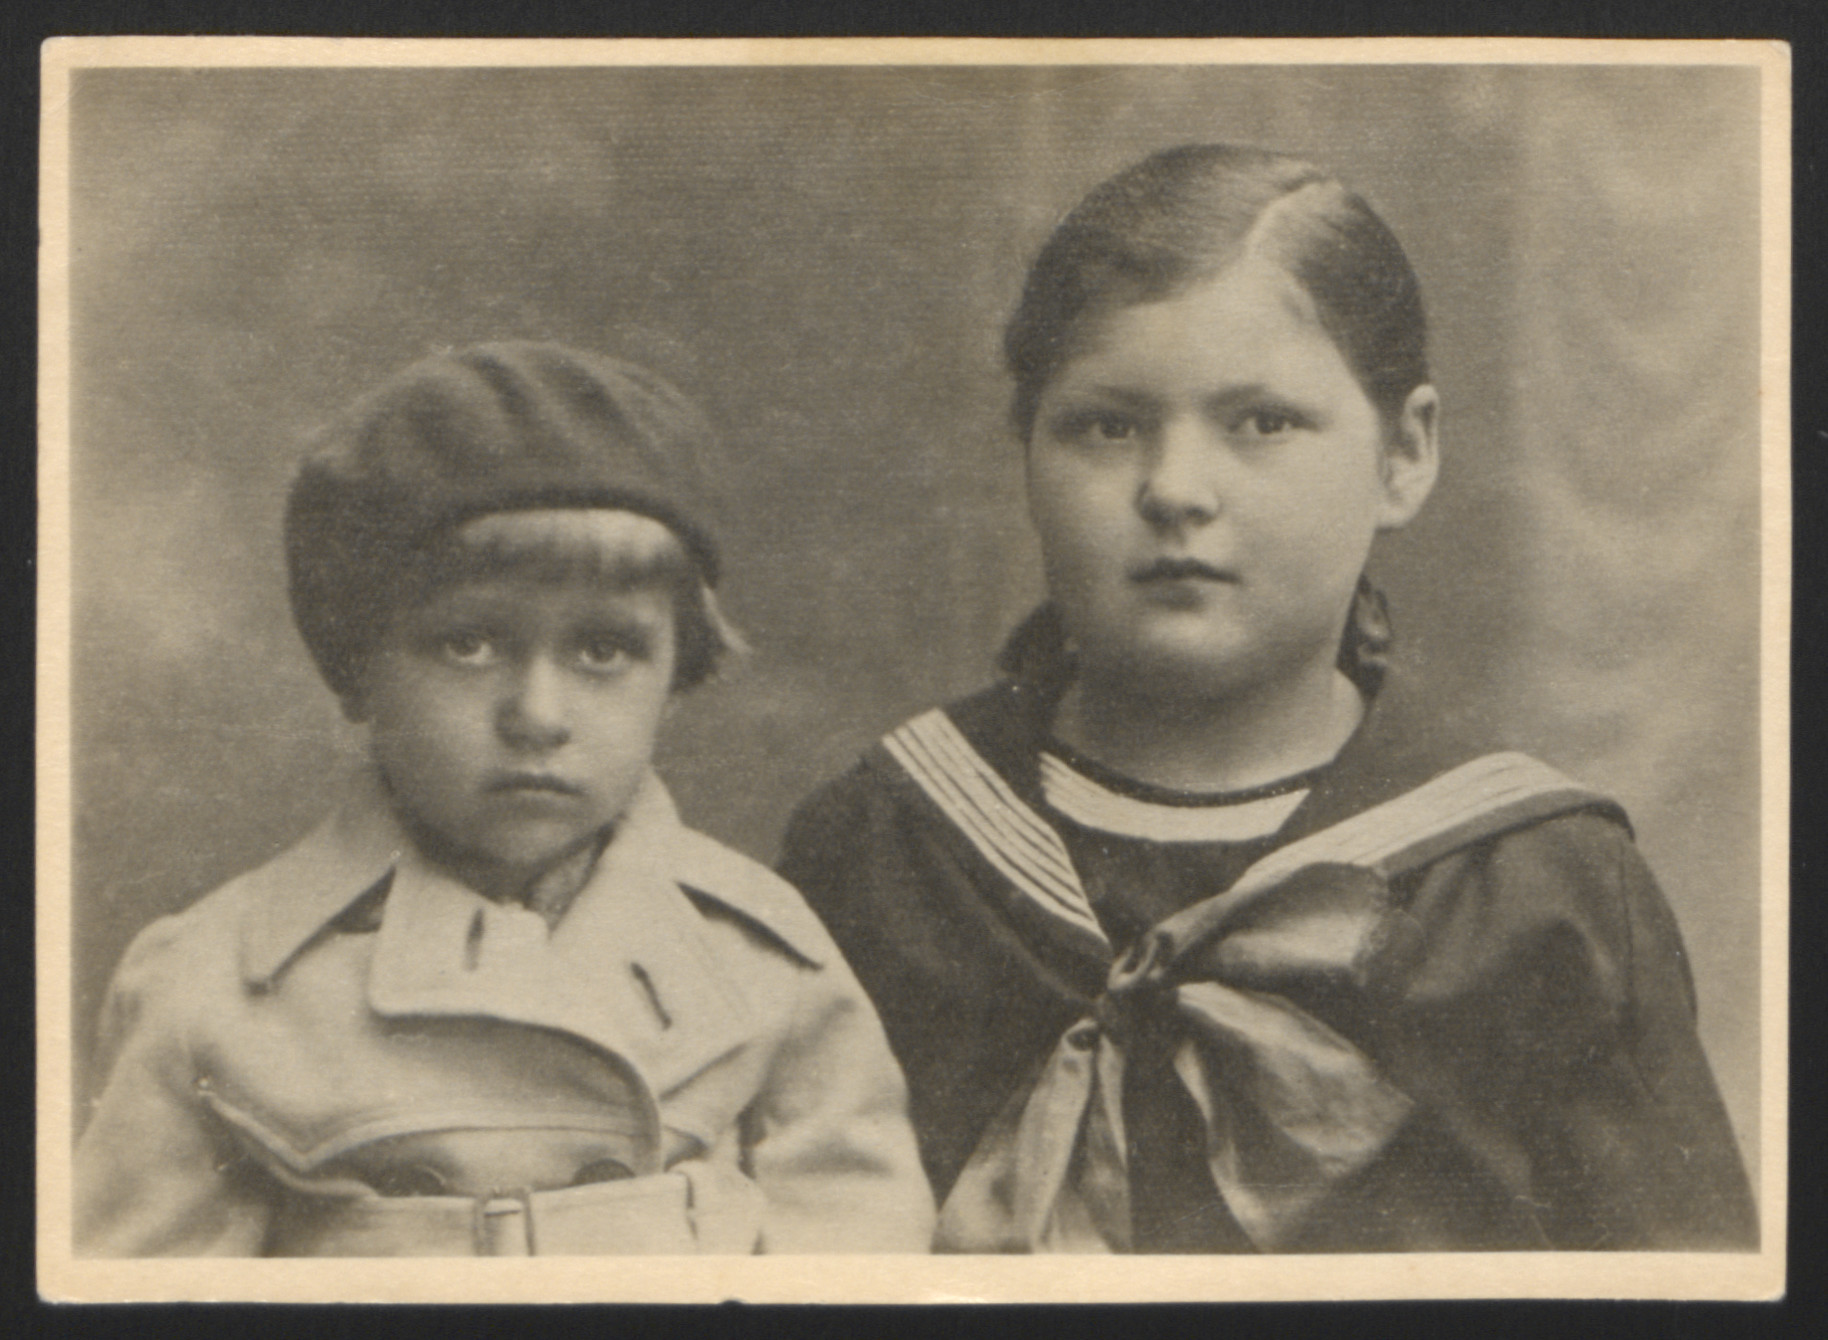 Sarah and Aaron Turek pose for a studio portrait in 1936.  They were killed in Majdanek seven years later.